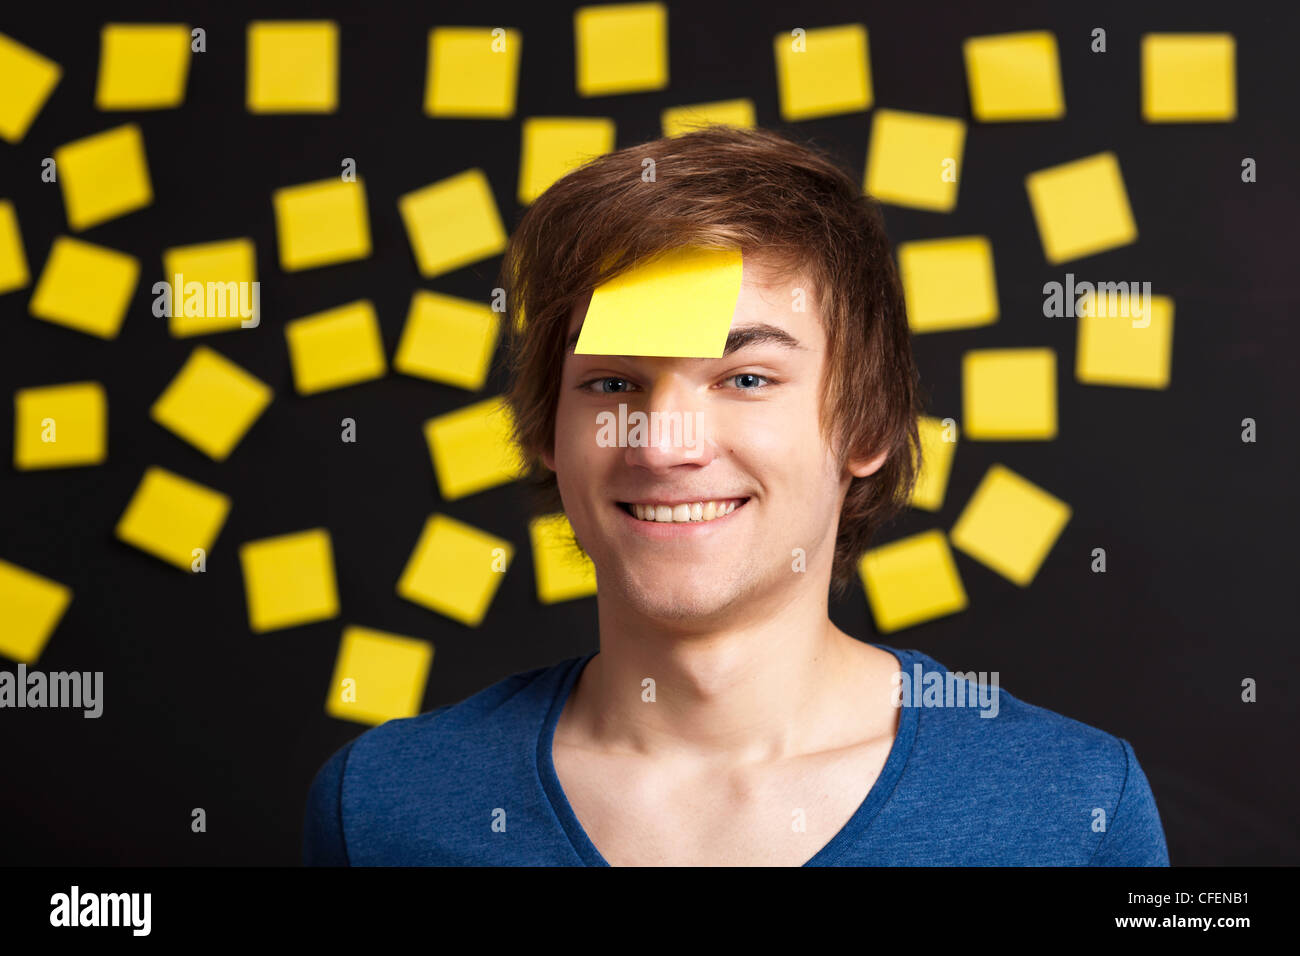 Happy student with a reminder on the head, and with more yellow paper notes in the background - Stock Image